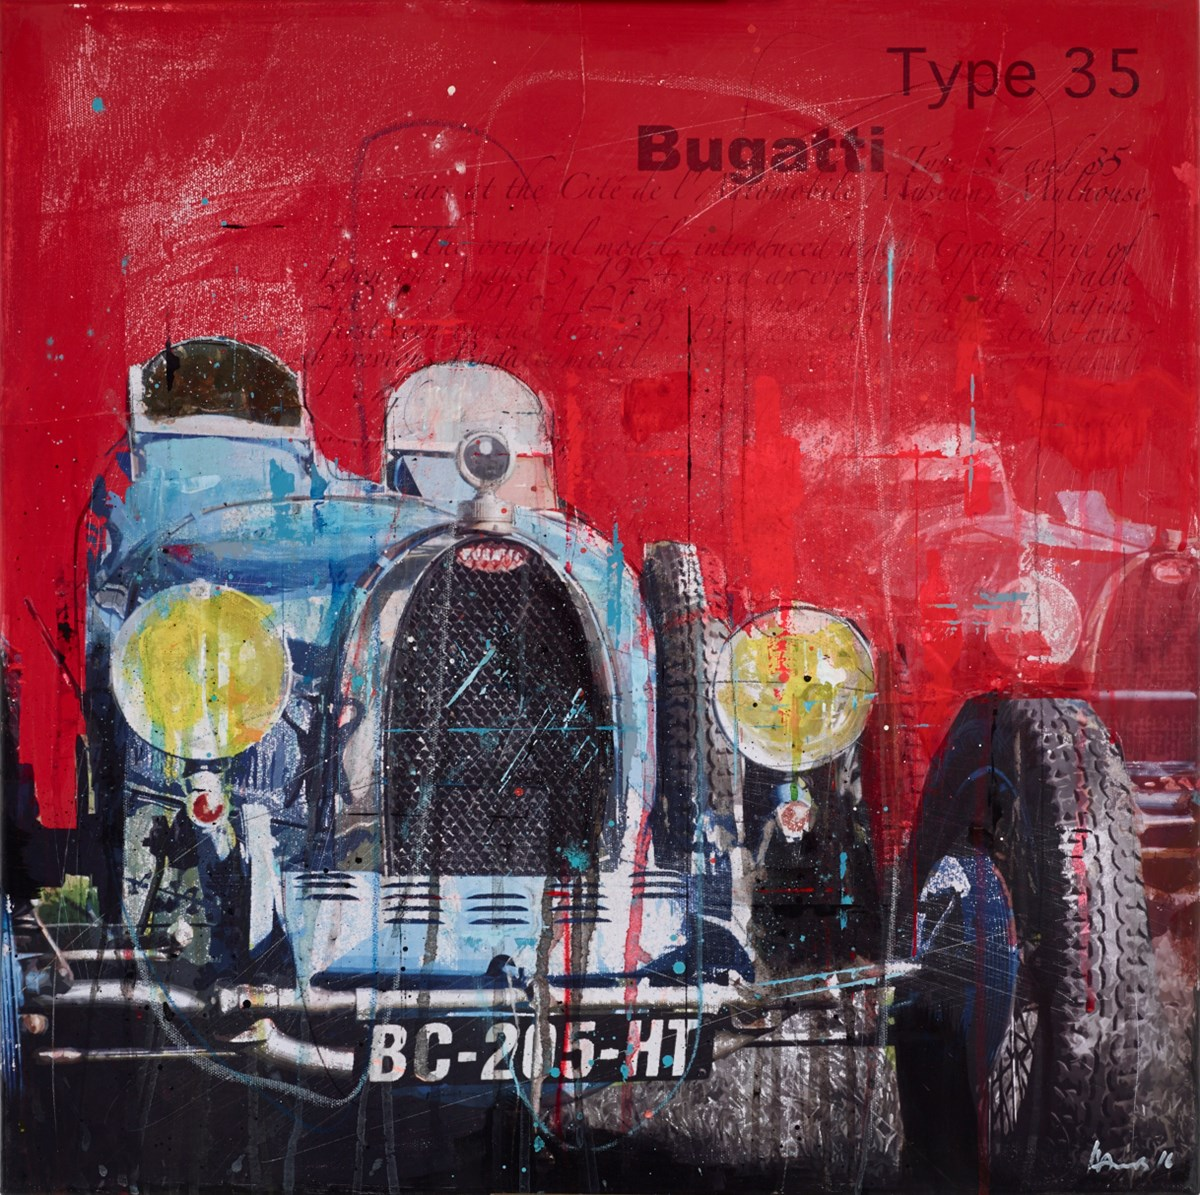 Bugatti RL665 by markus haub -  sized 24x24 inches. Available from Whitewall Galleries